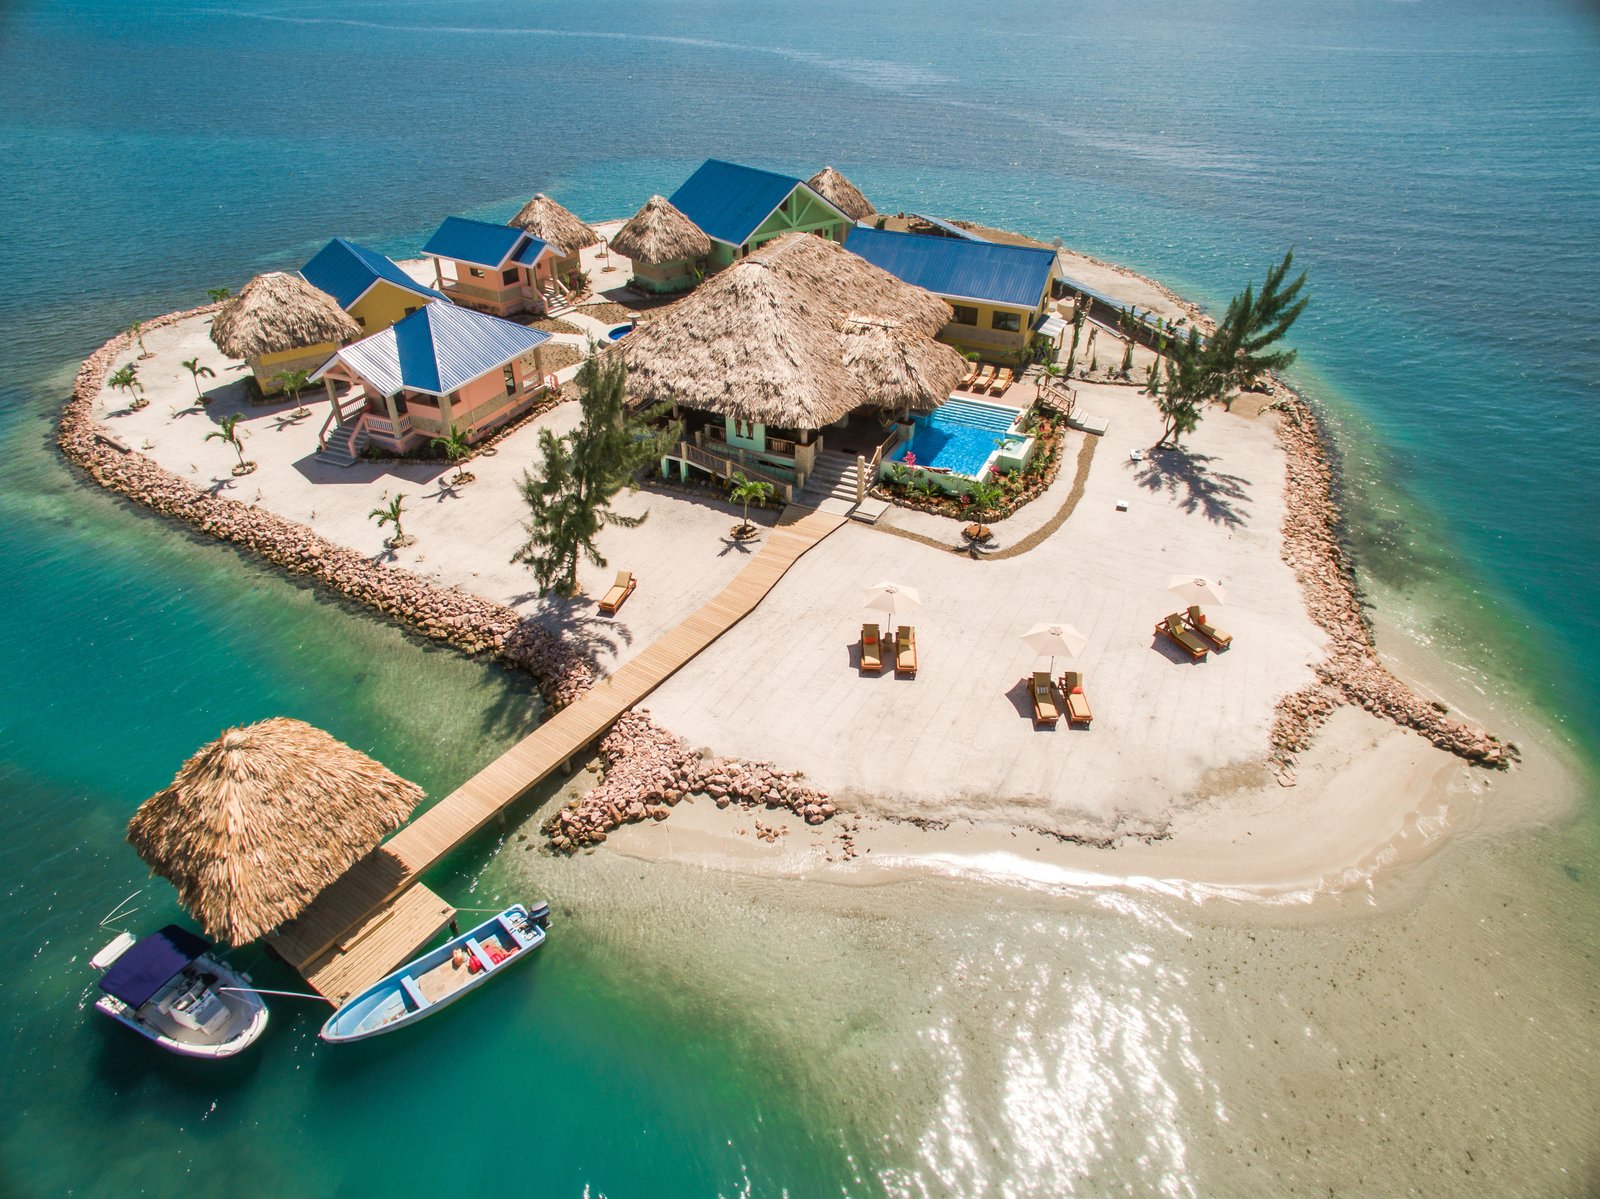 8 Unique Vacation Rentals Around the World